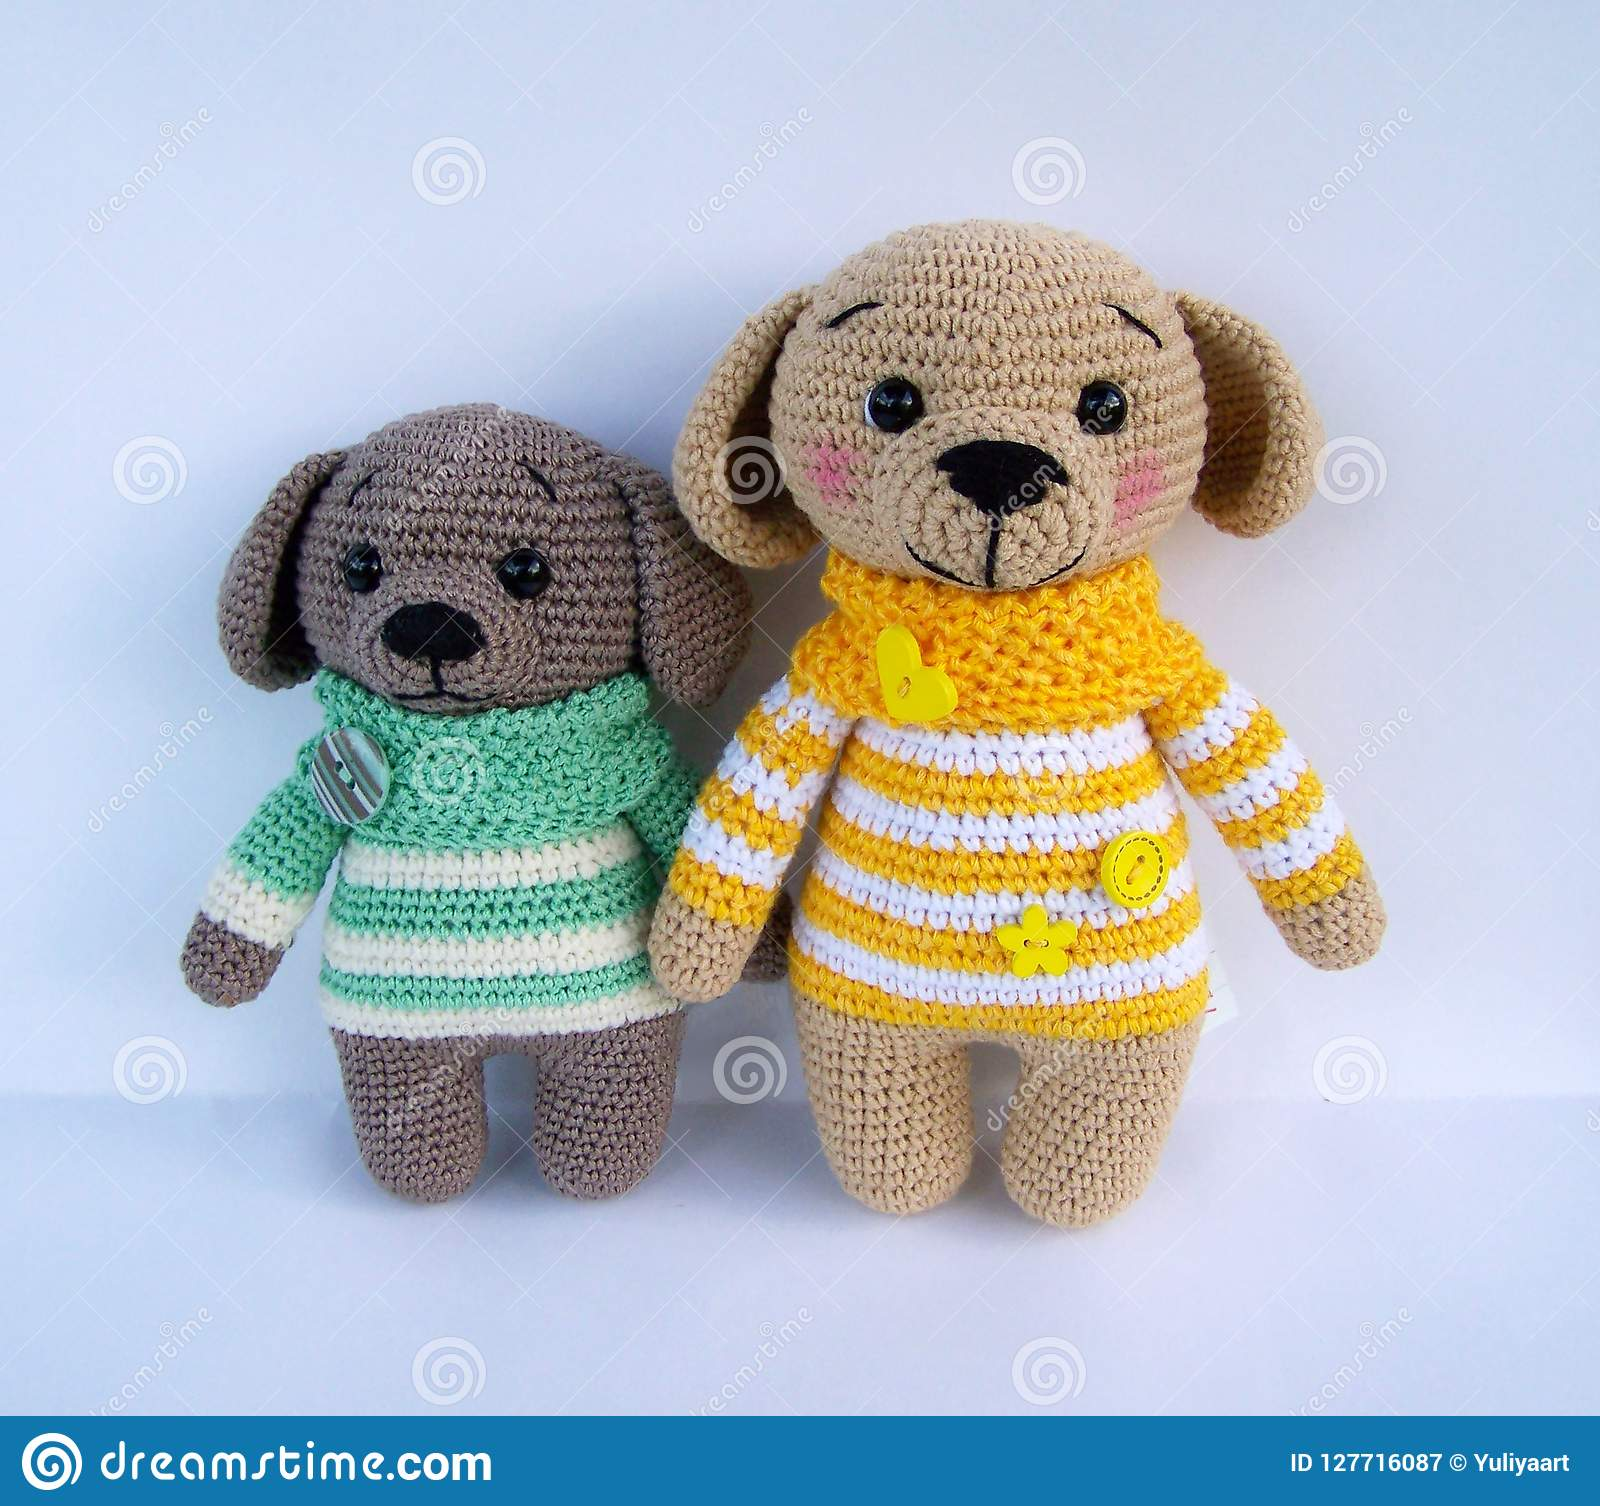 How to crochet an animal / doll dress with collar - Wooly Wonders ... | 1506x1600